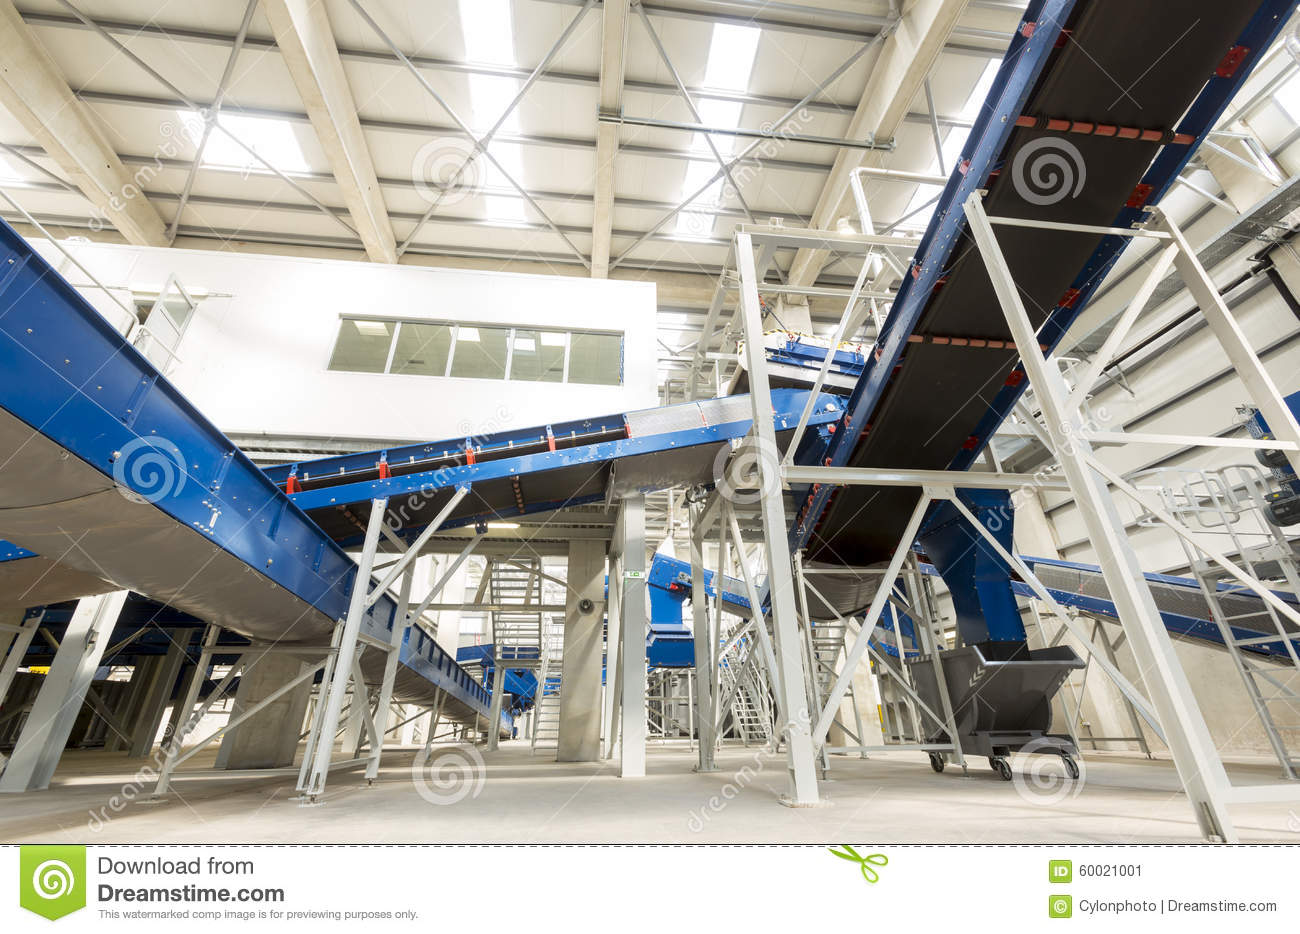 Biomass Garbage Electricity Energy ~ Biomass waste plant inside stock photo image